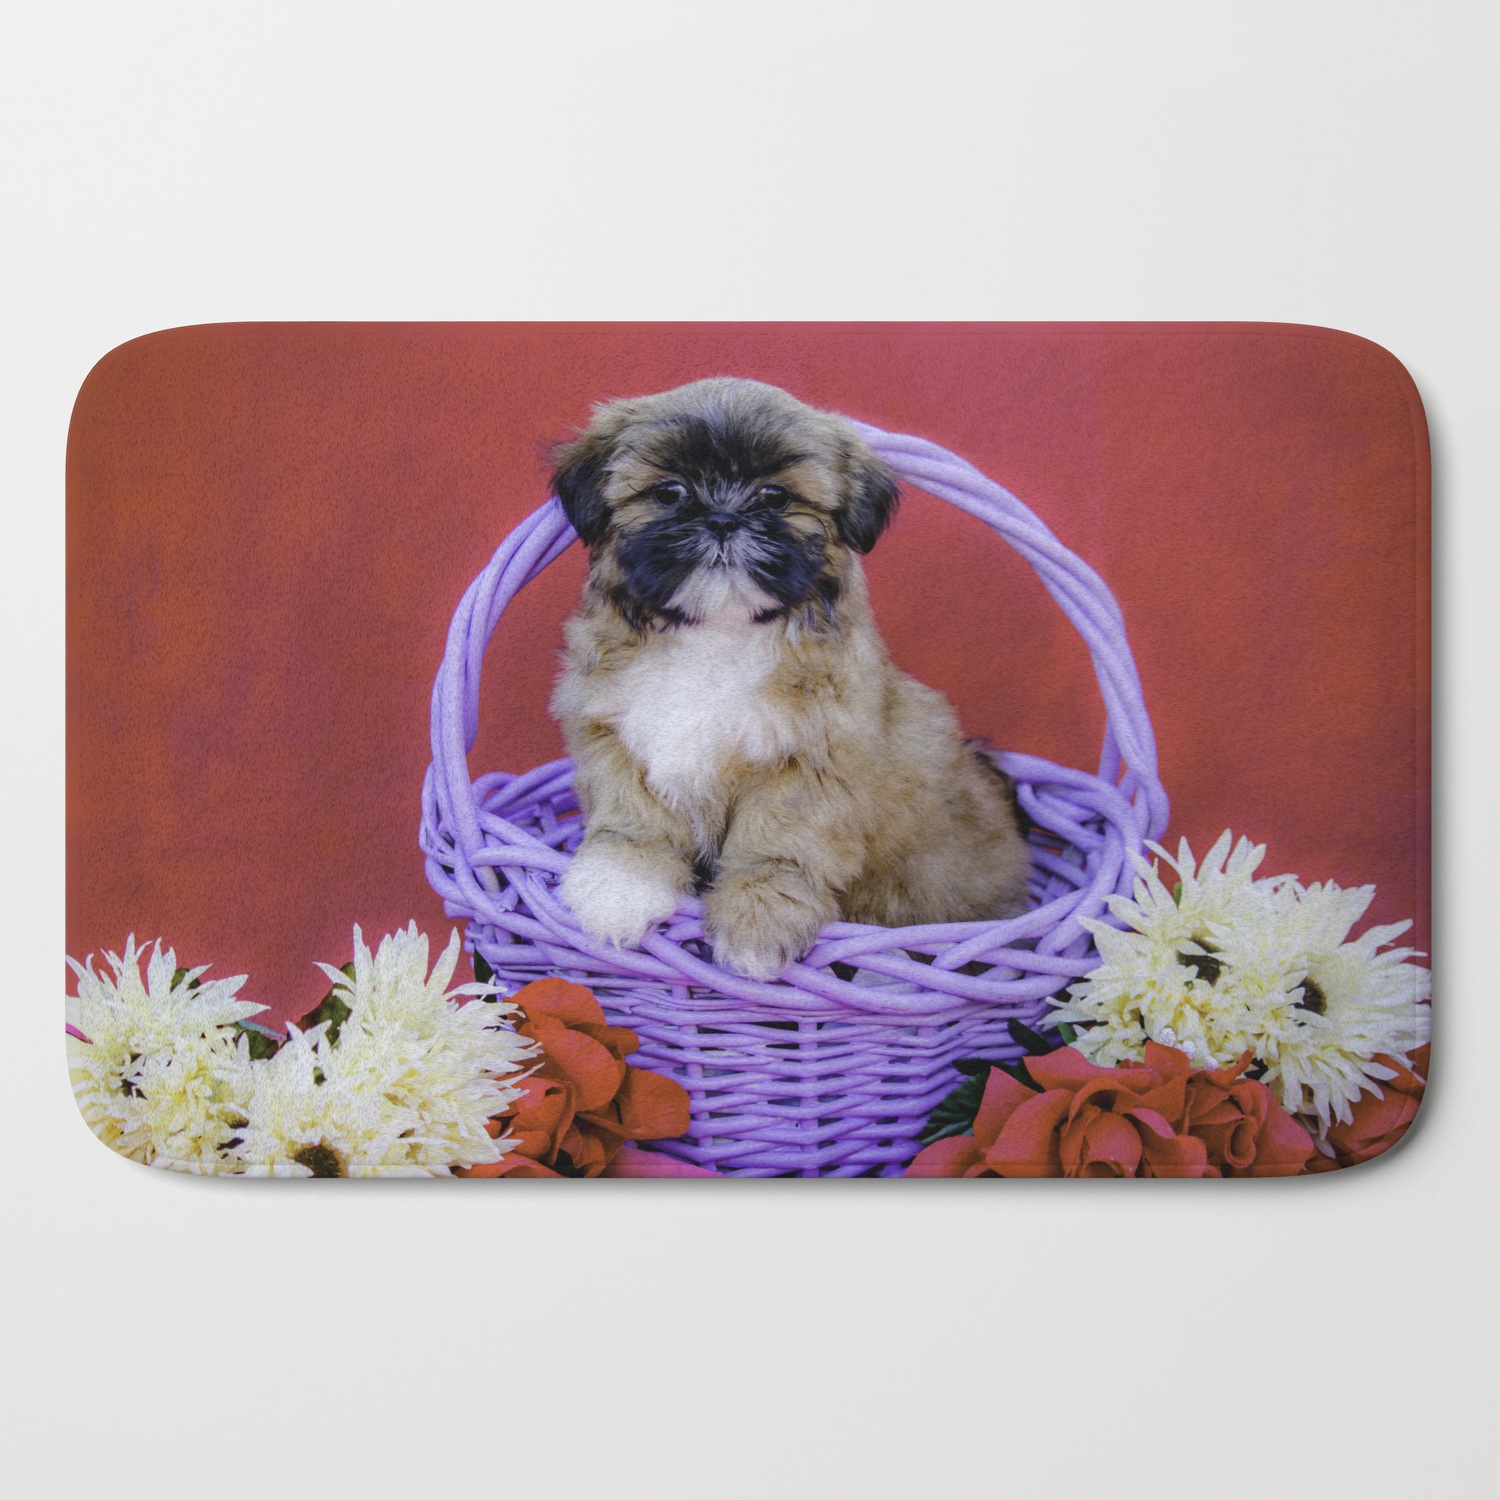 Brown And White Shih Tzu Puppy Standing In A Purple Basket With Flowers In Front Of A Red Background Bath Mat By Wespeakpuppy Society6